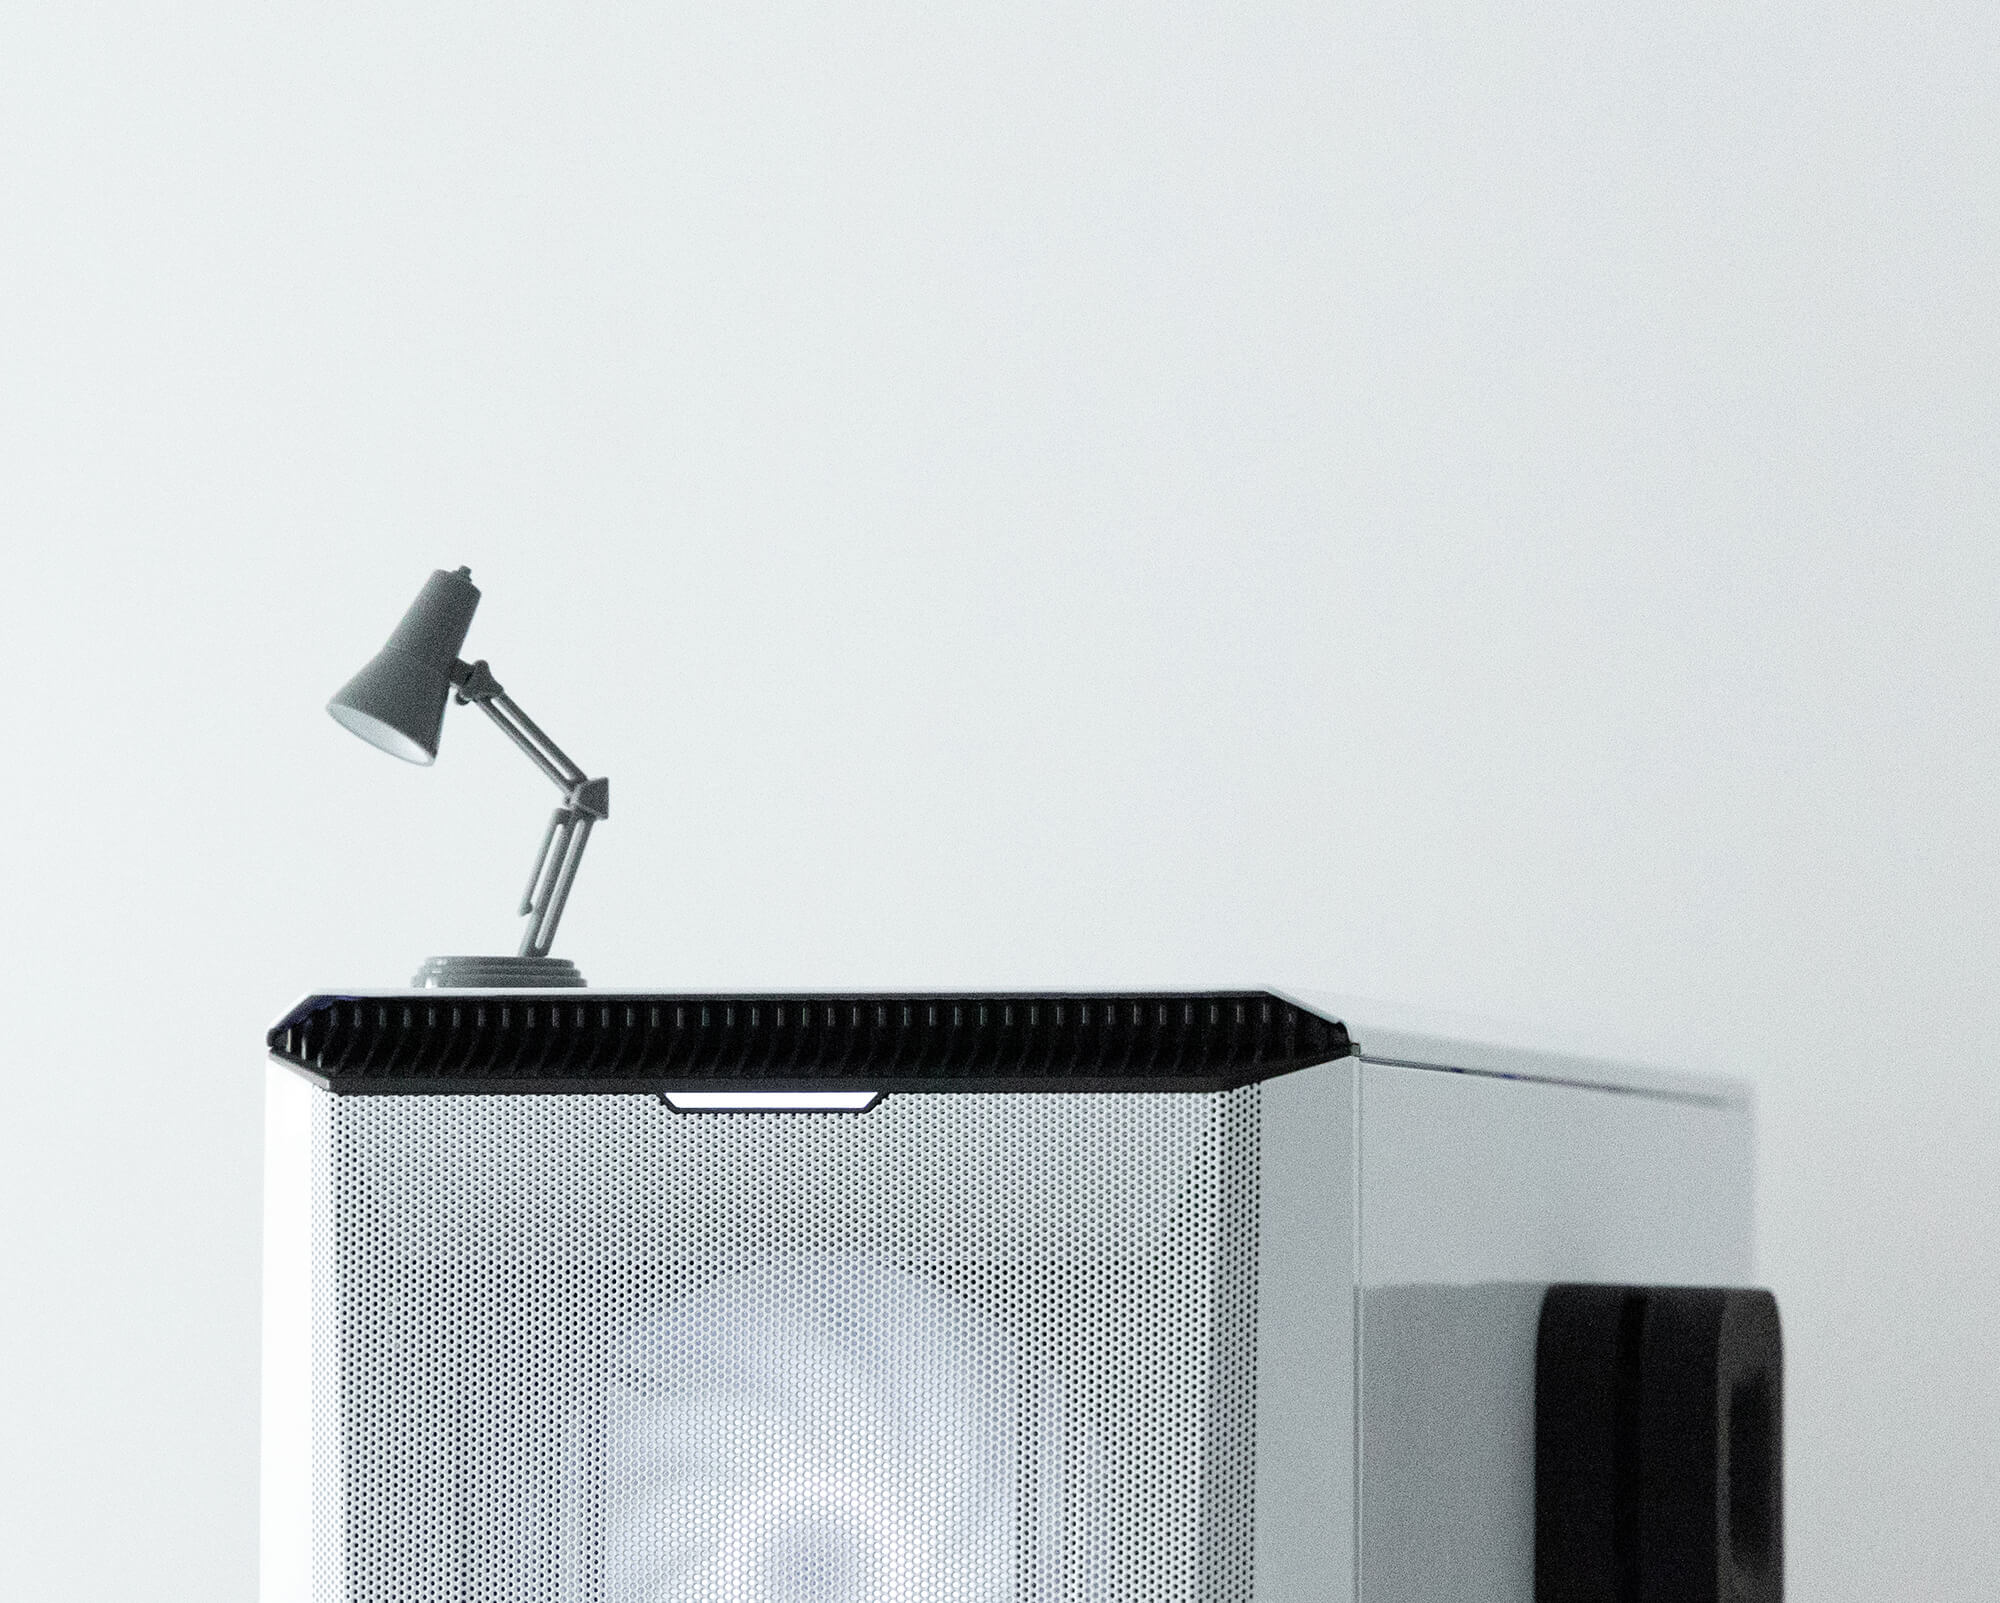 A semi-anthropomorphic desk lamp is the main mascot of Pixar Animation Studios. In 1986, the jumping lamp made its debut in the first Pixar's film titled Luxo Jr.